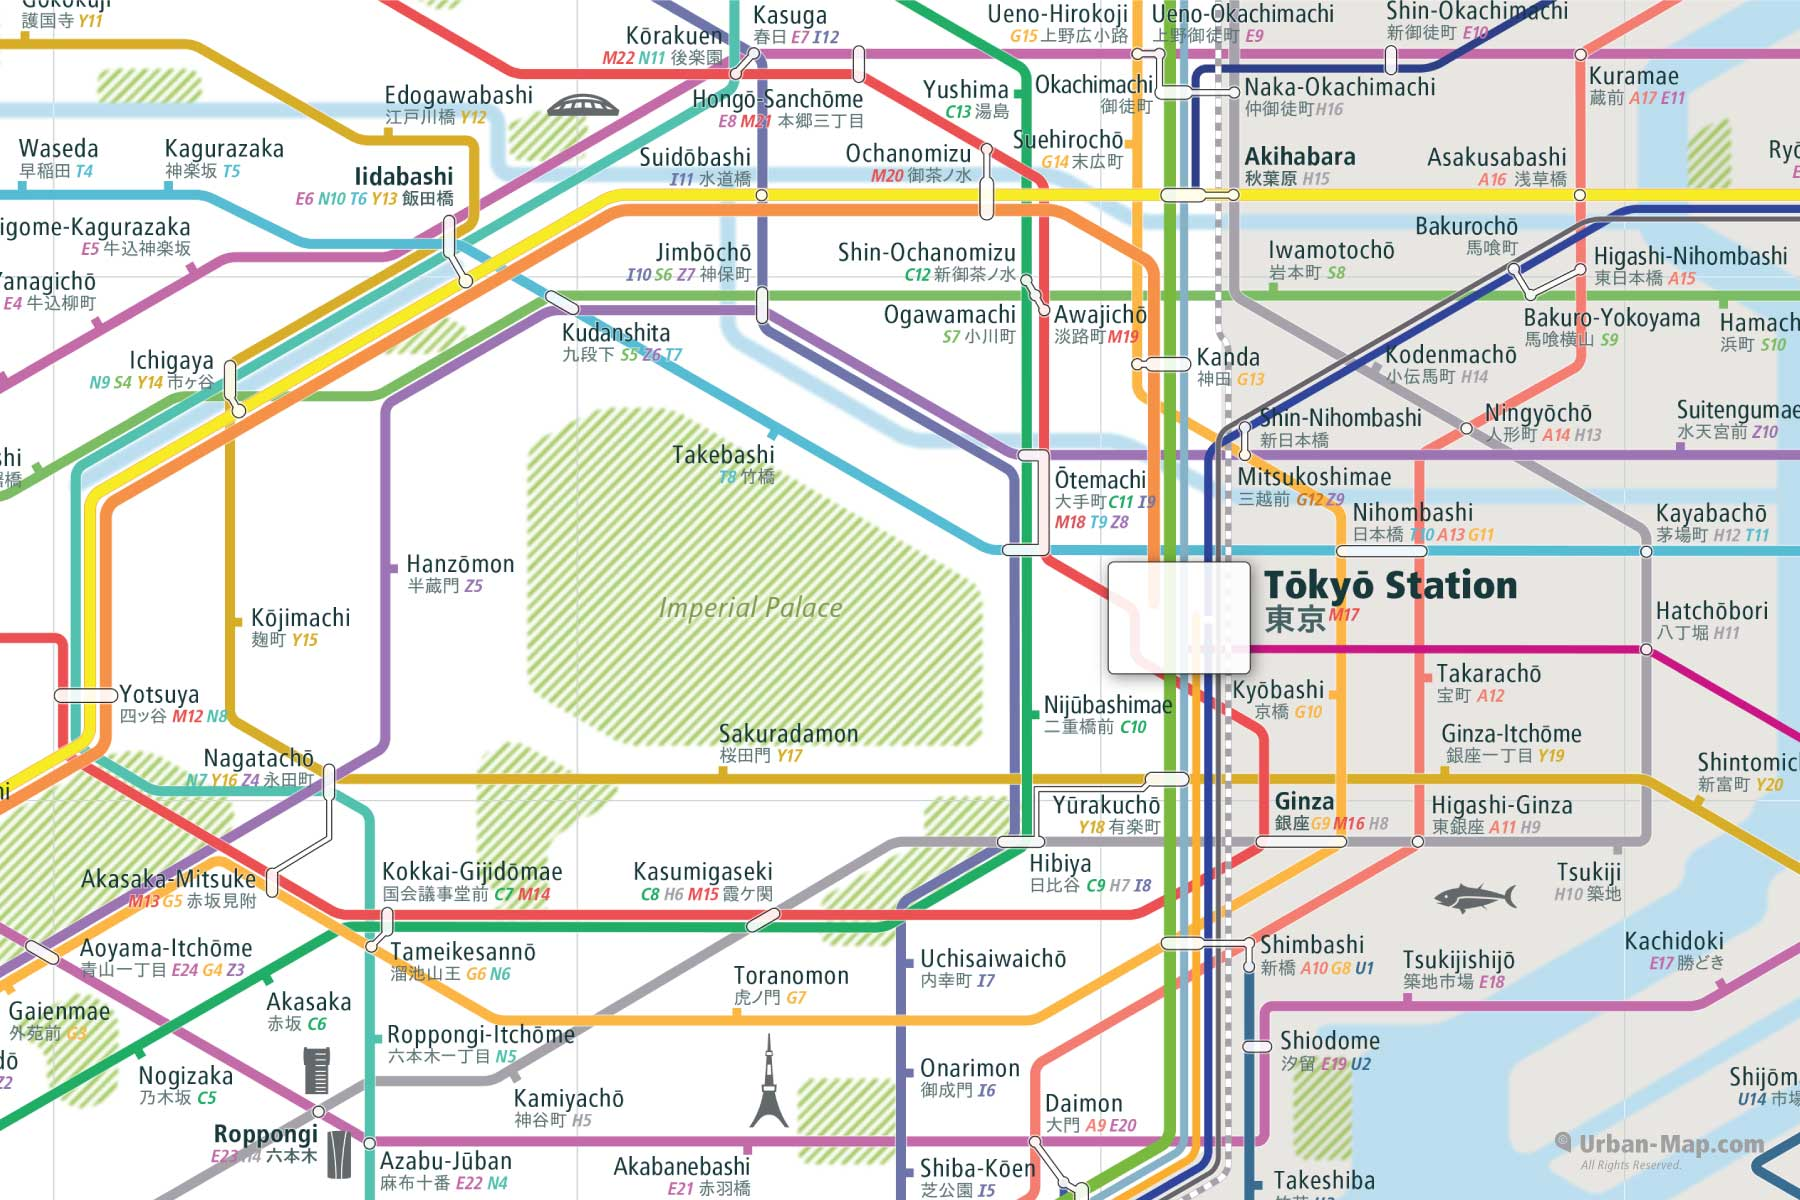 Tokyo City Rail Map shows the train and public transportation routes of JR East Japan Rail, Metro, Toei Subway